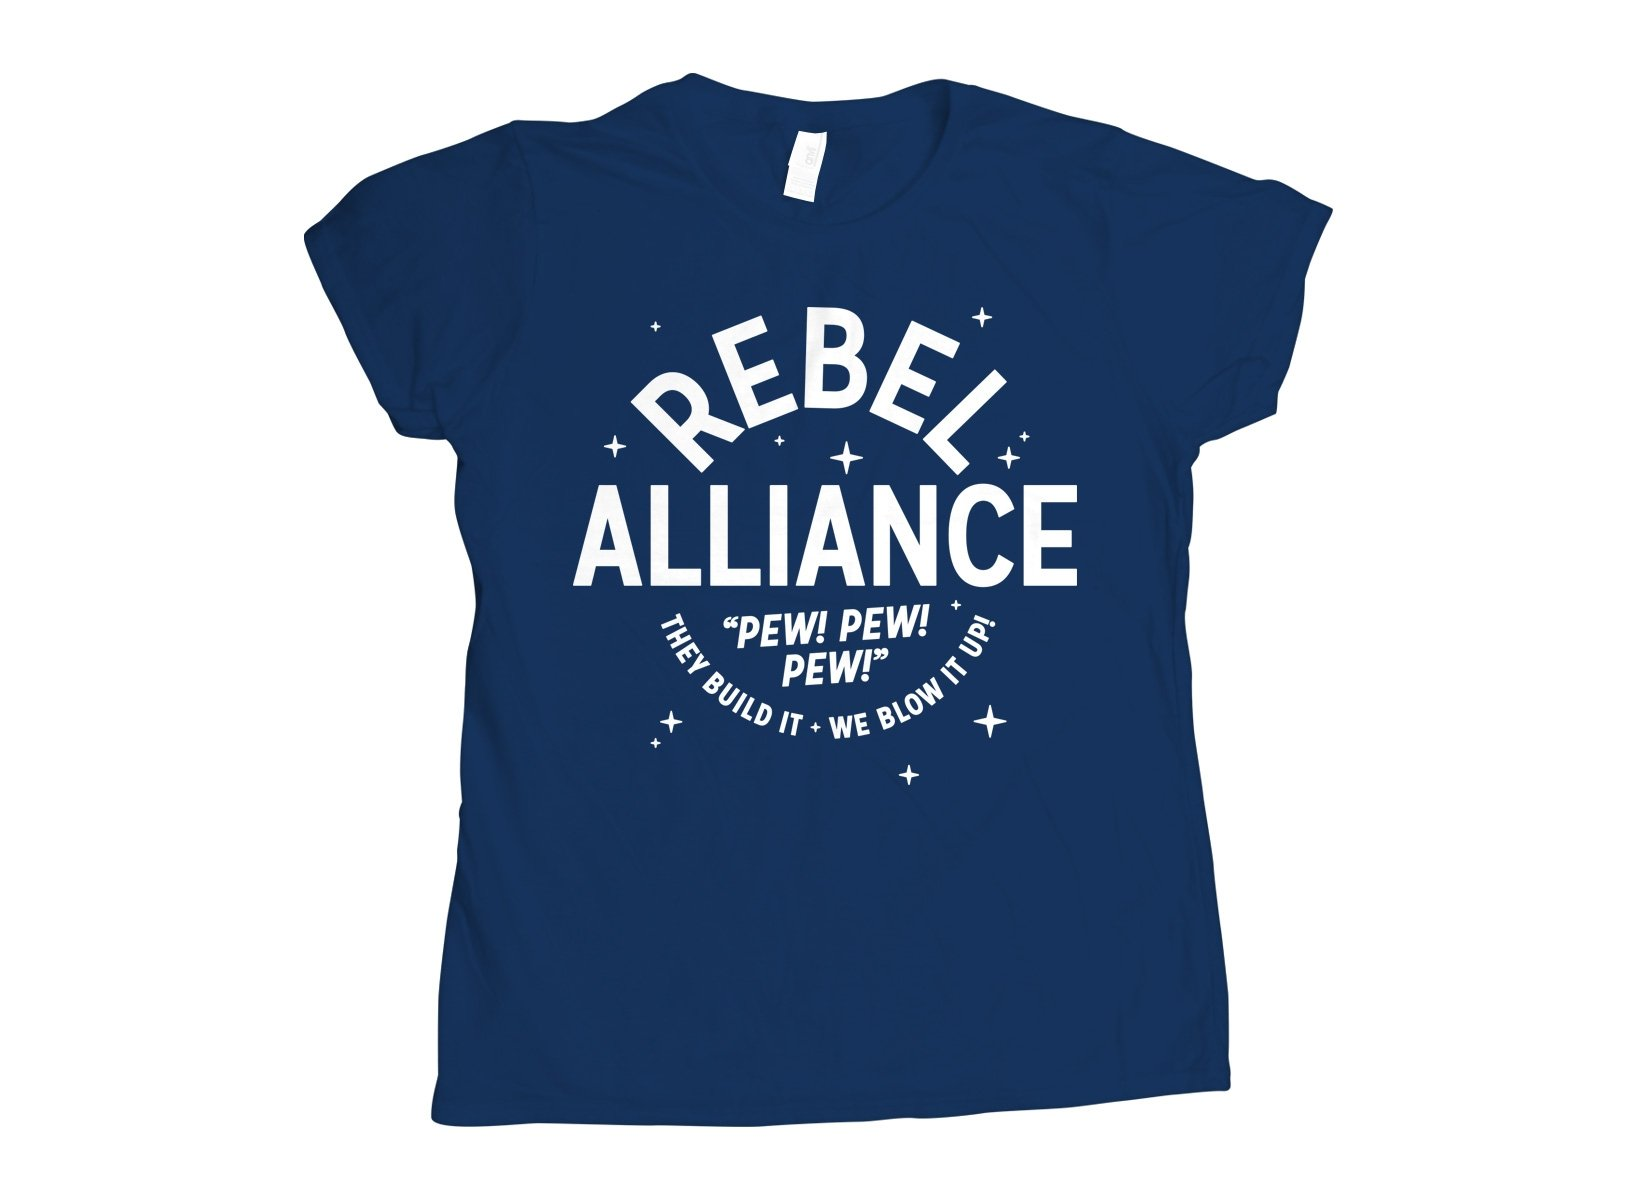 Rebel Alliance on Womens T-Shirt